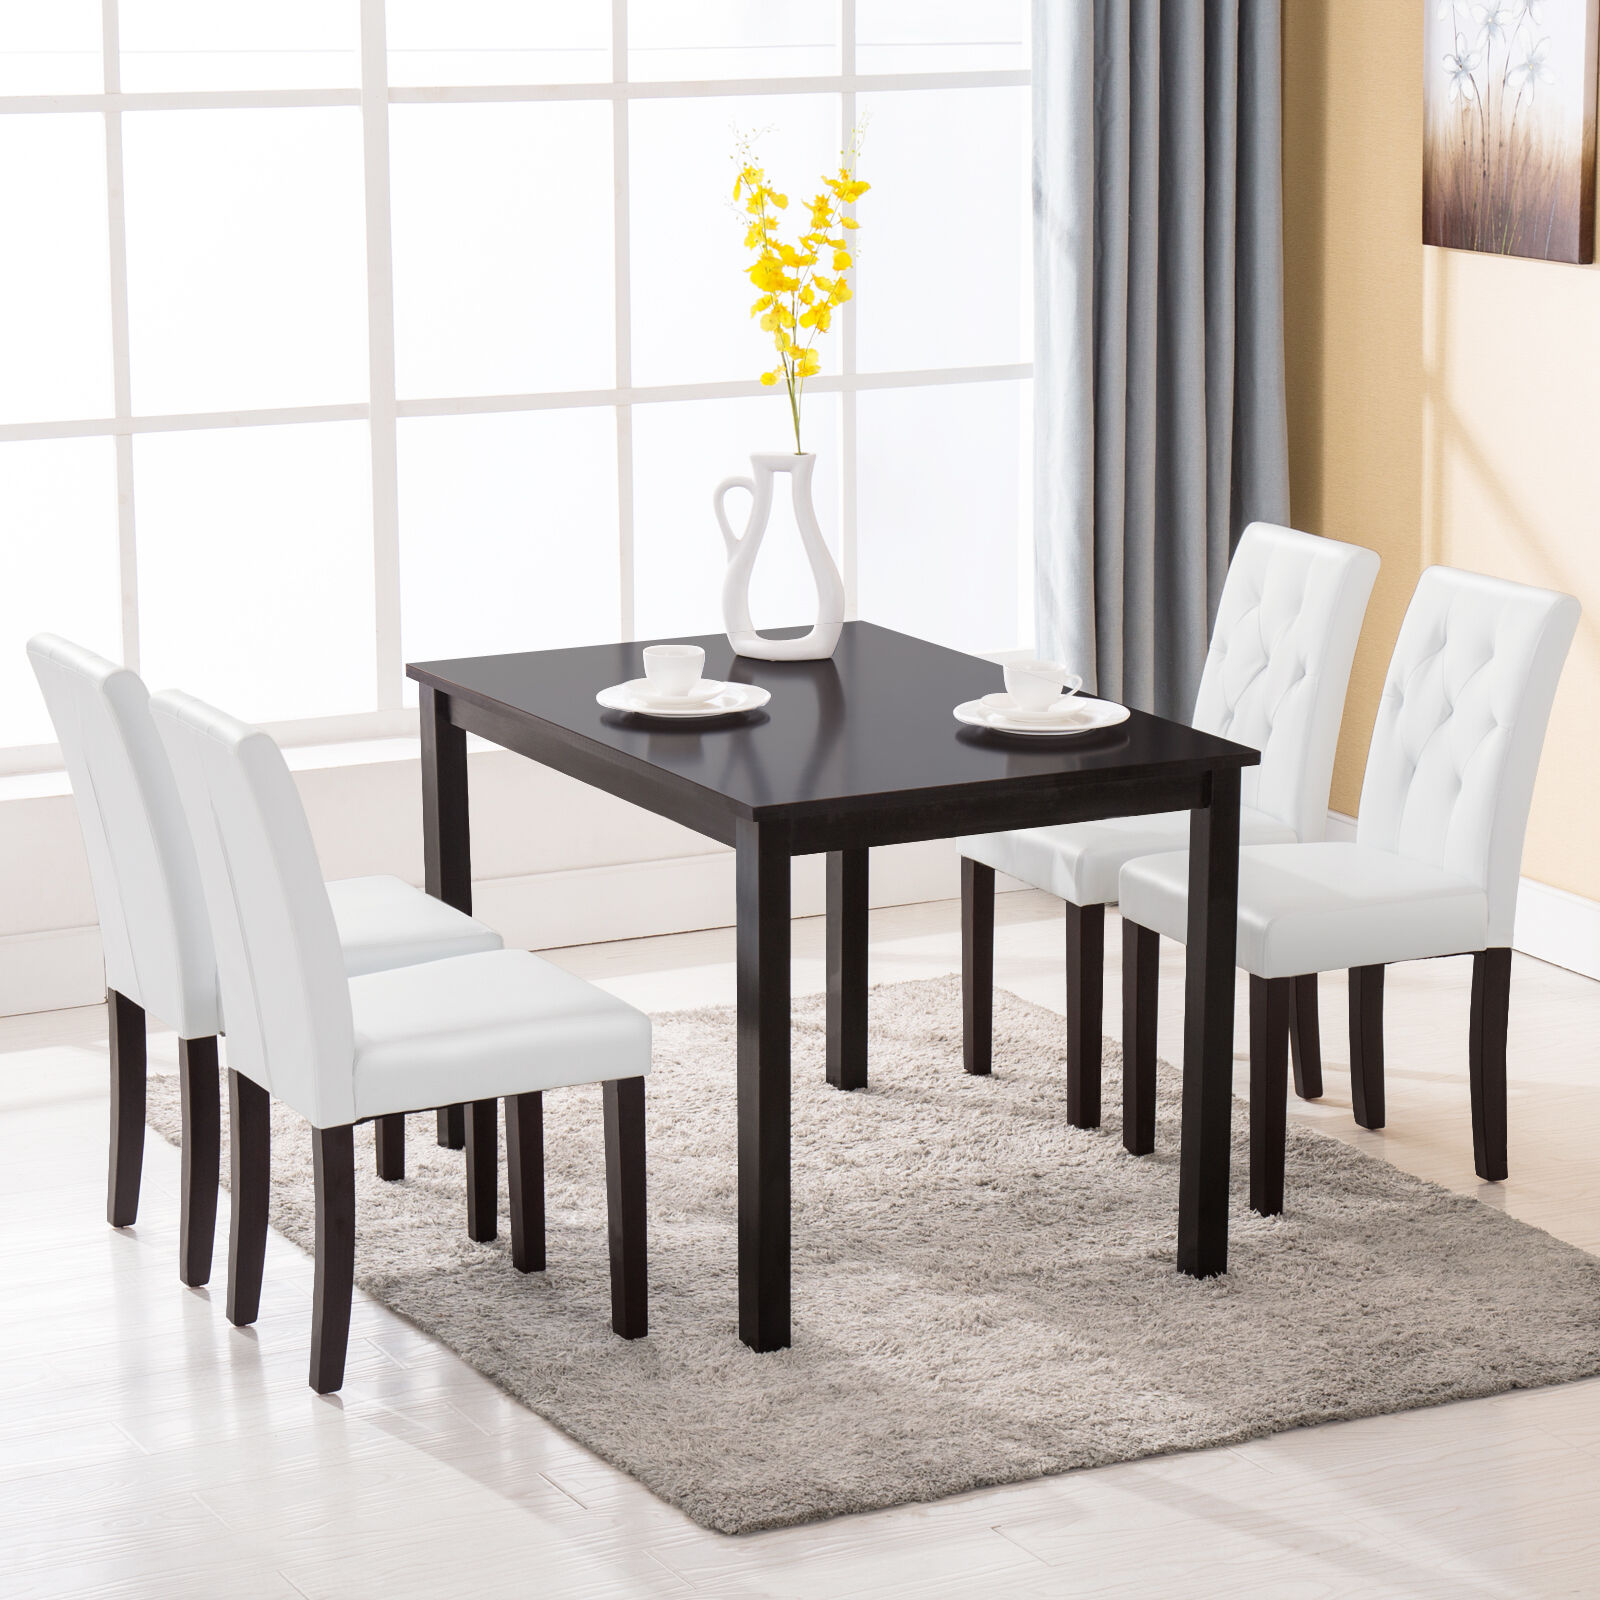 5 piece dining table set 4 chairs room kitchen dinette for Kitchen dining room chairs